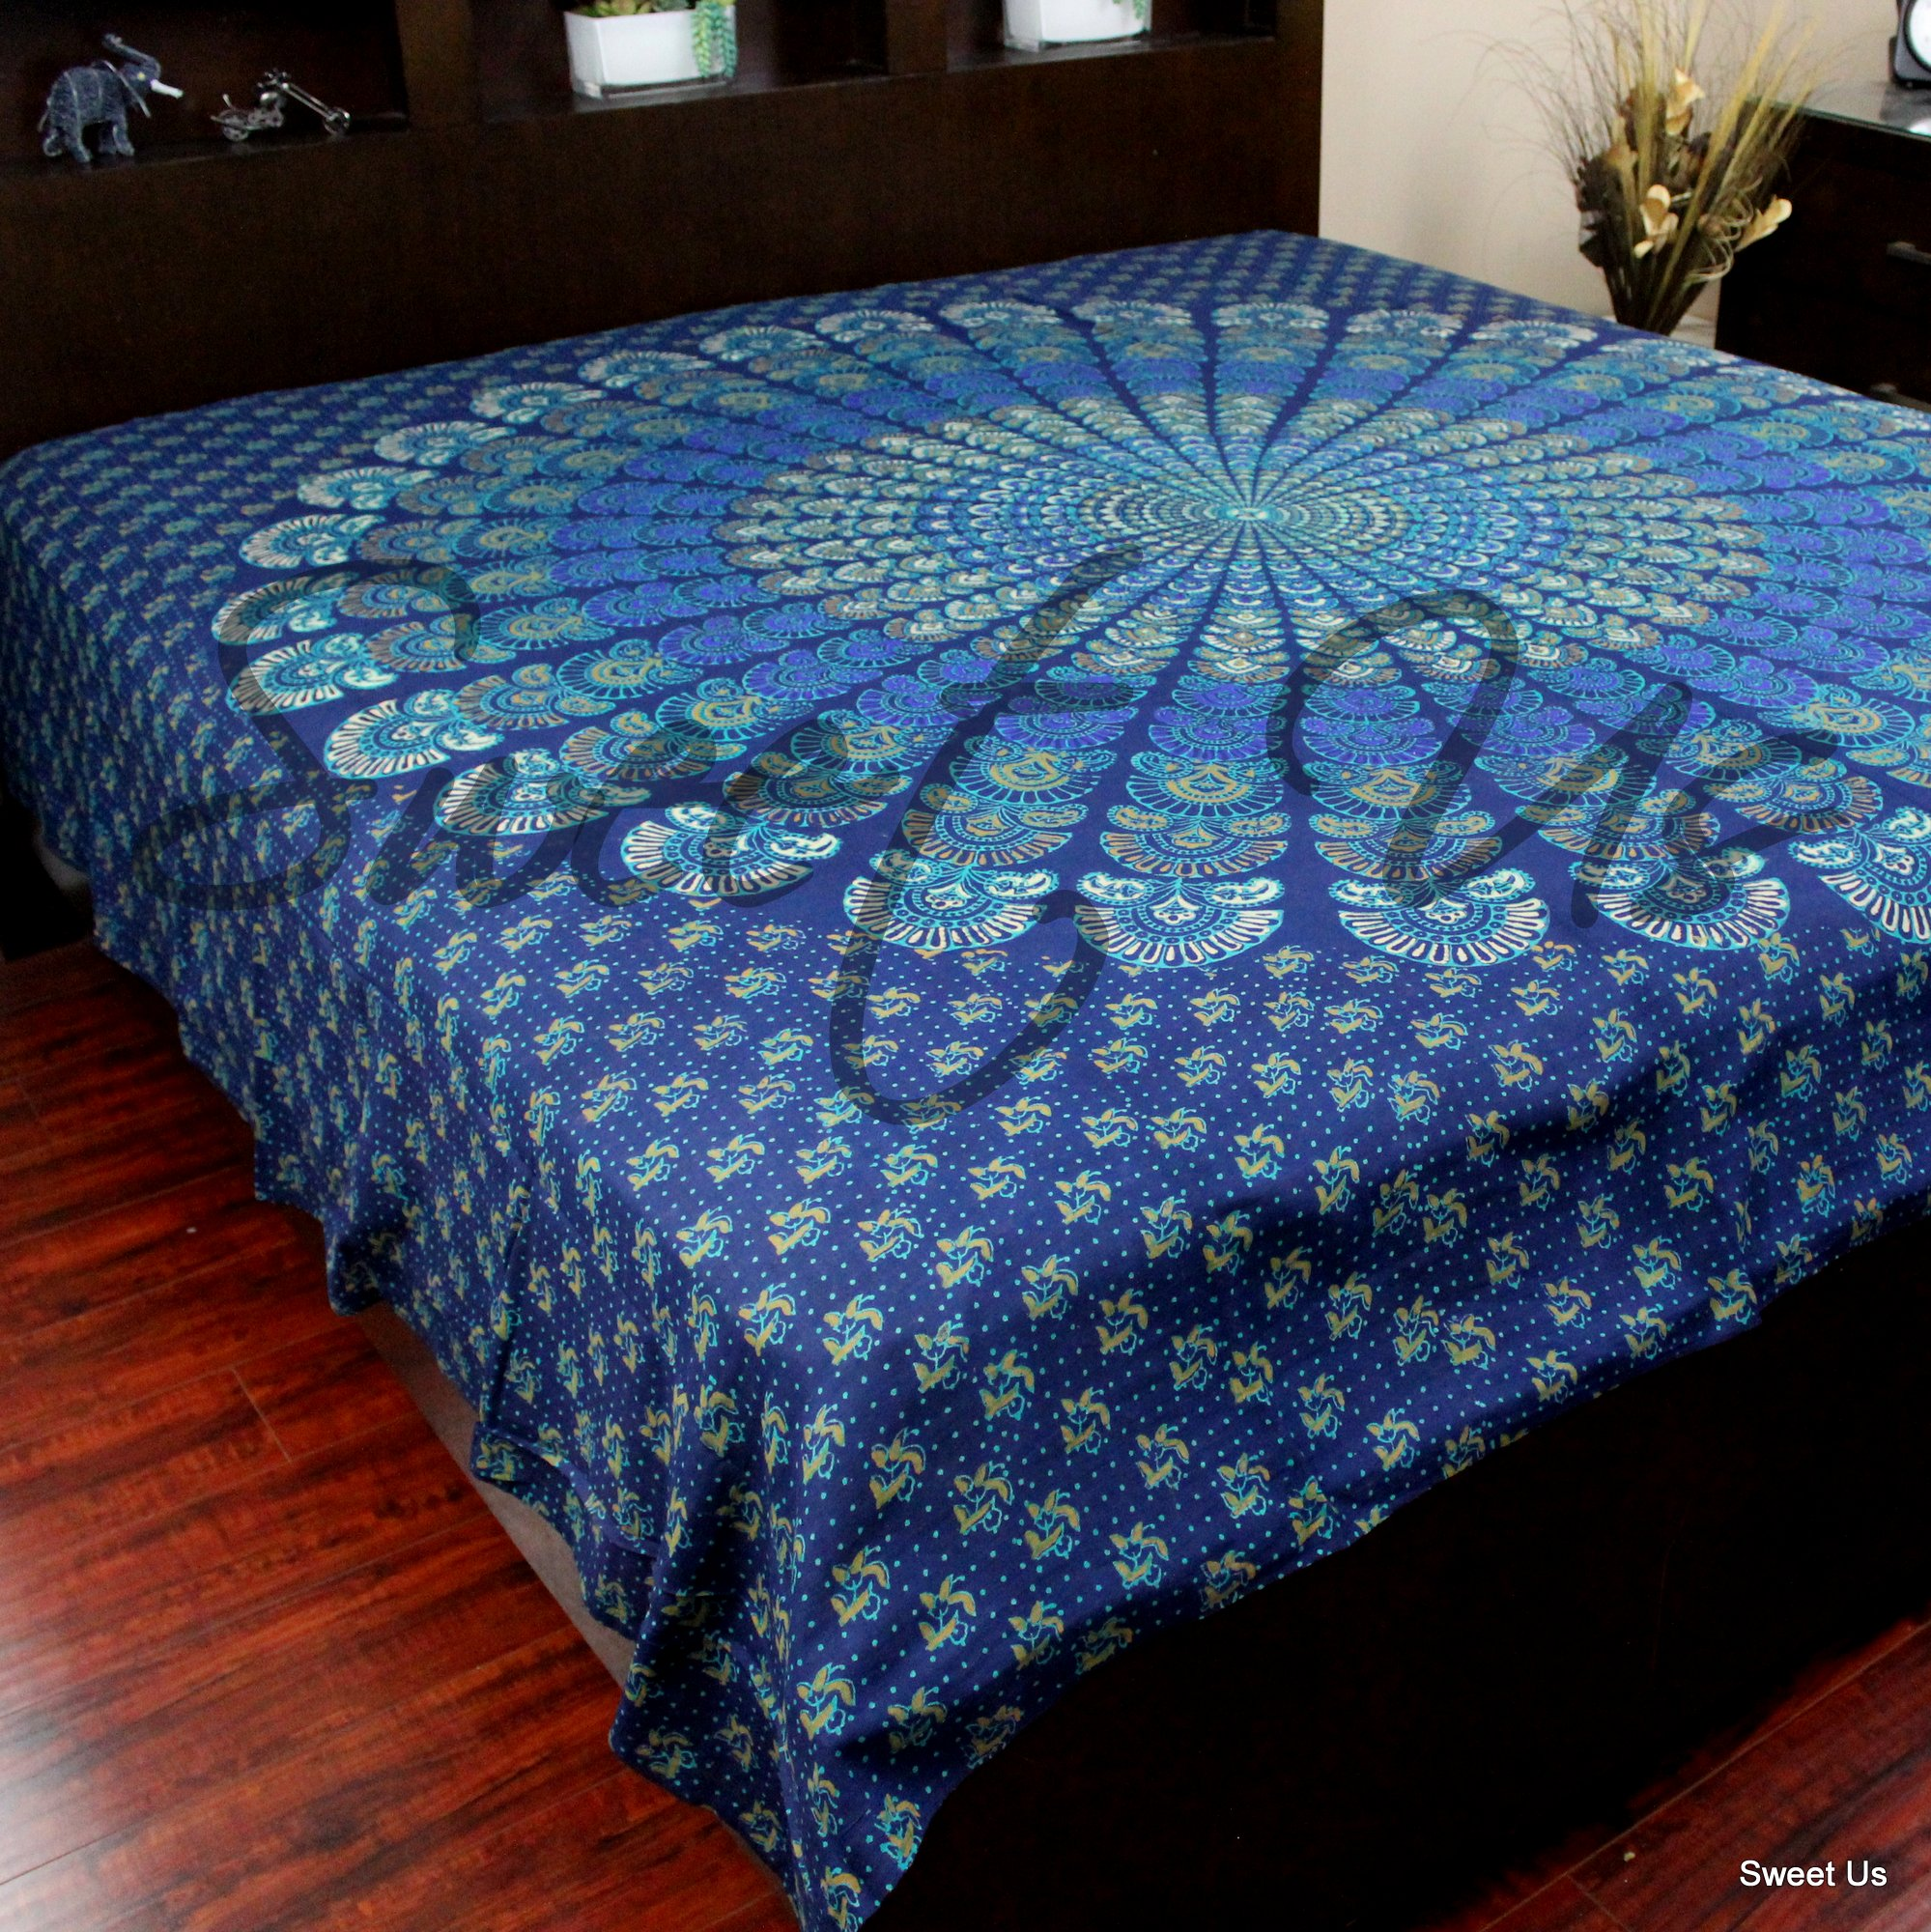 Cotton Mandala Floral Bed Sheet Queen King Tapestry Wall Hang Blue Gold Walmart Com Walmart Com